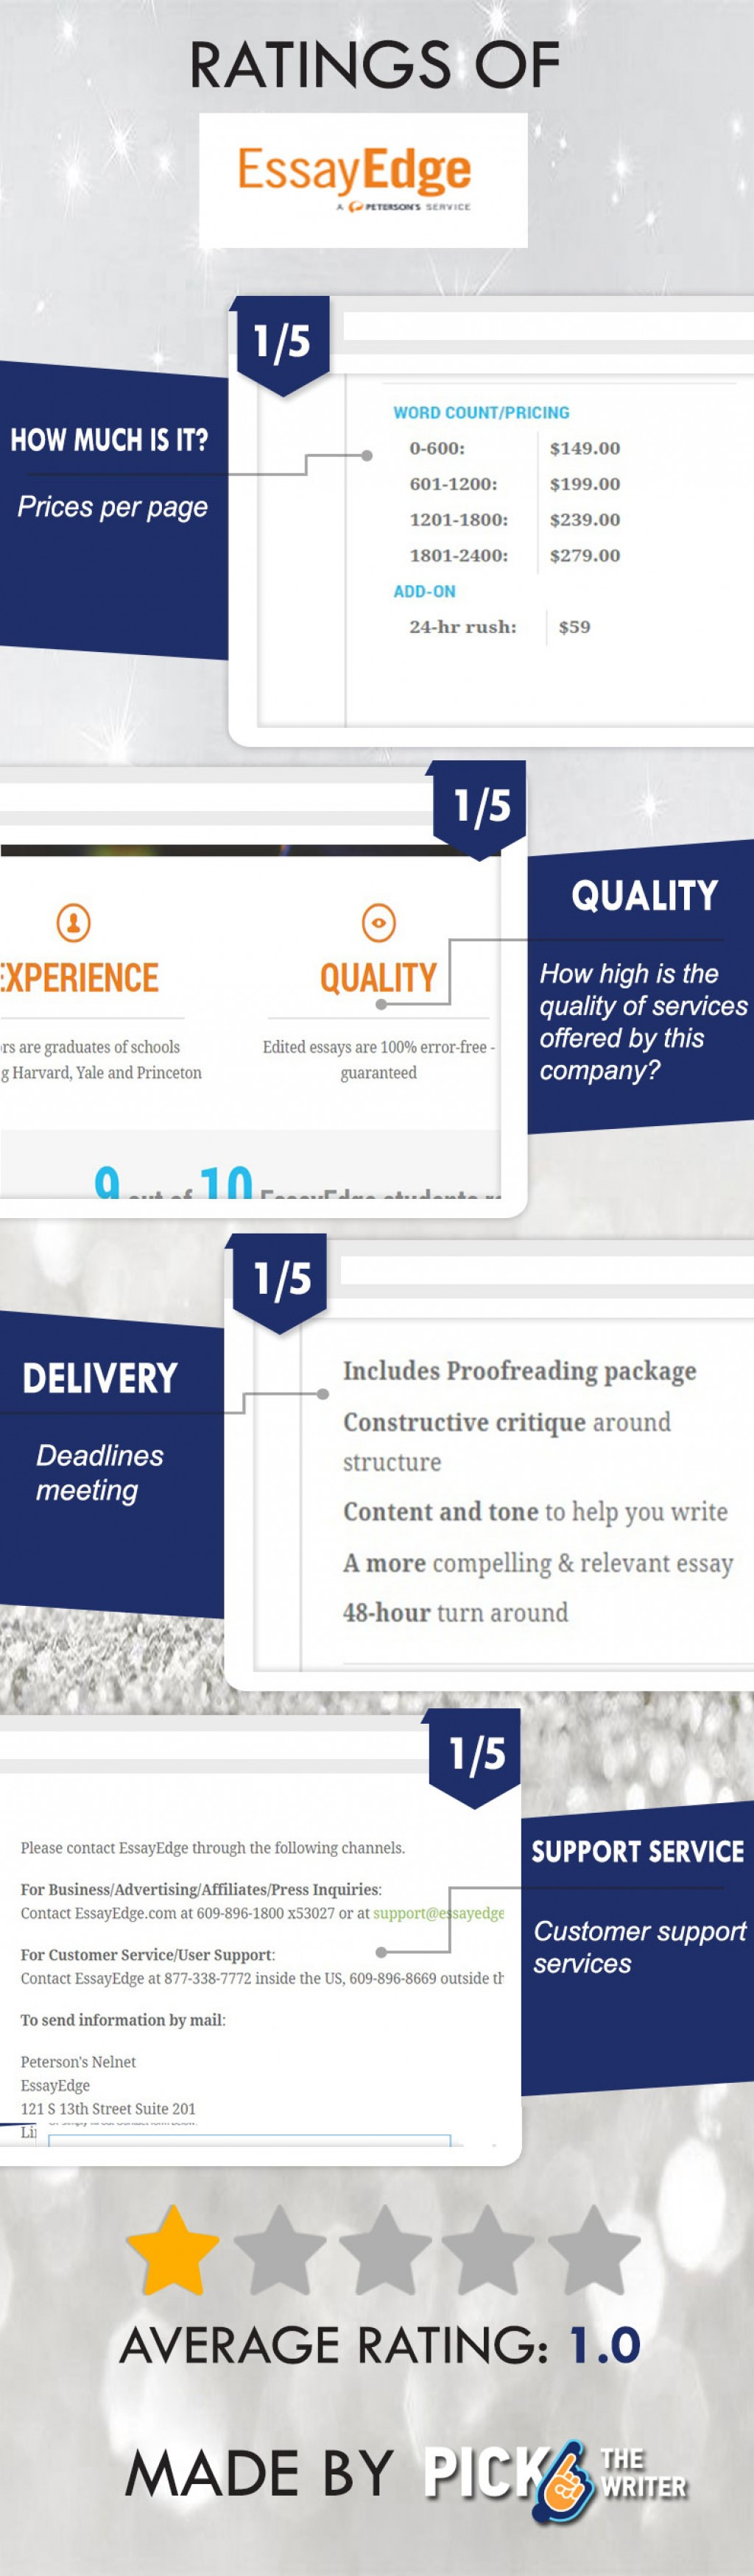 003 Essayedge Review Made By Pick The Writer Website Essay Example Unusual Edge Personal Statement Pricing Large